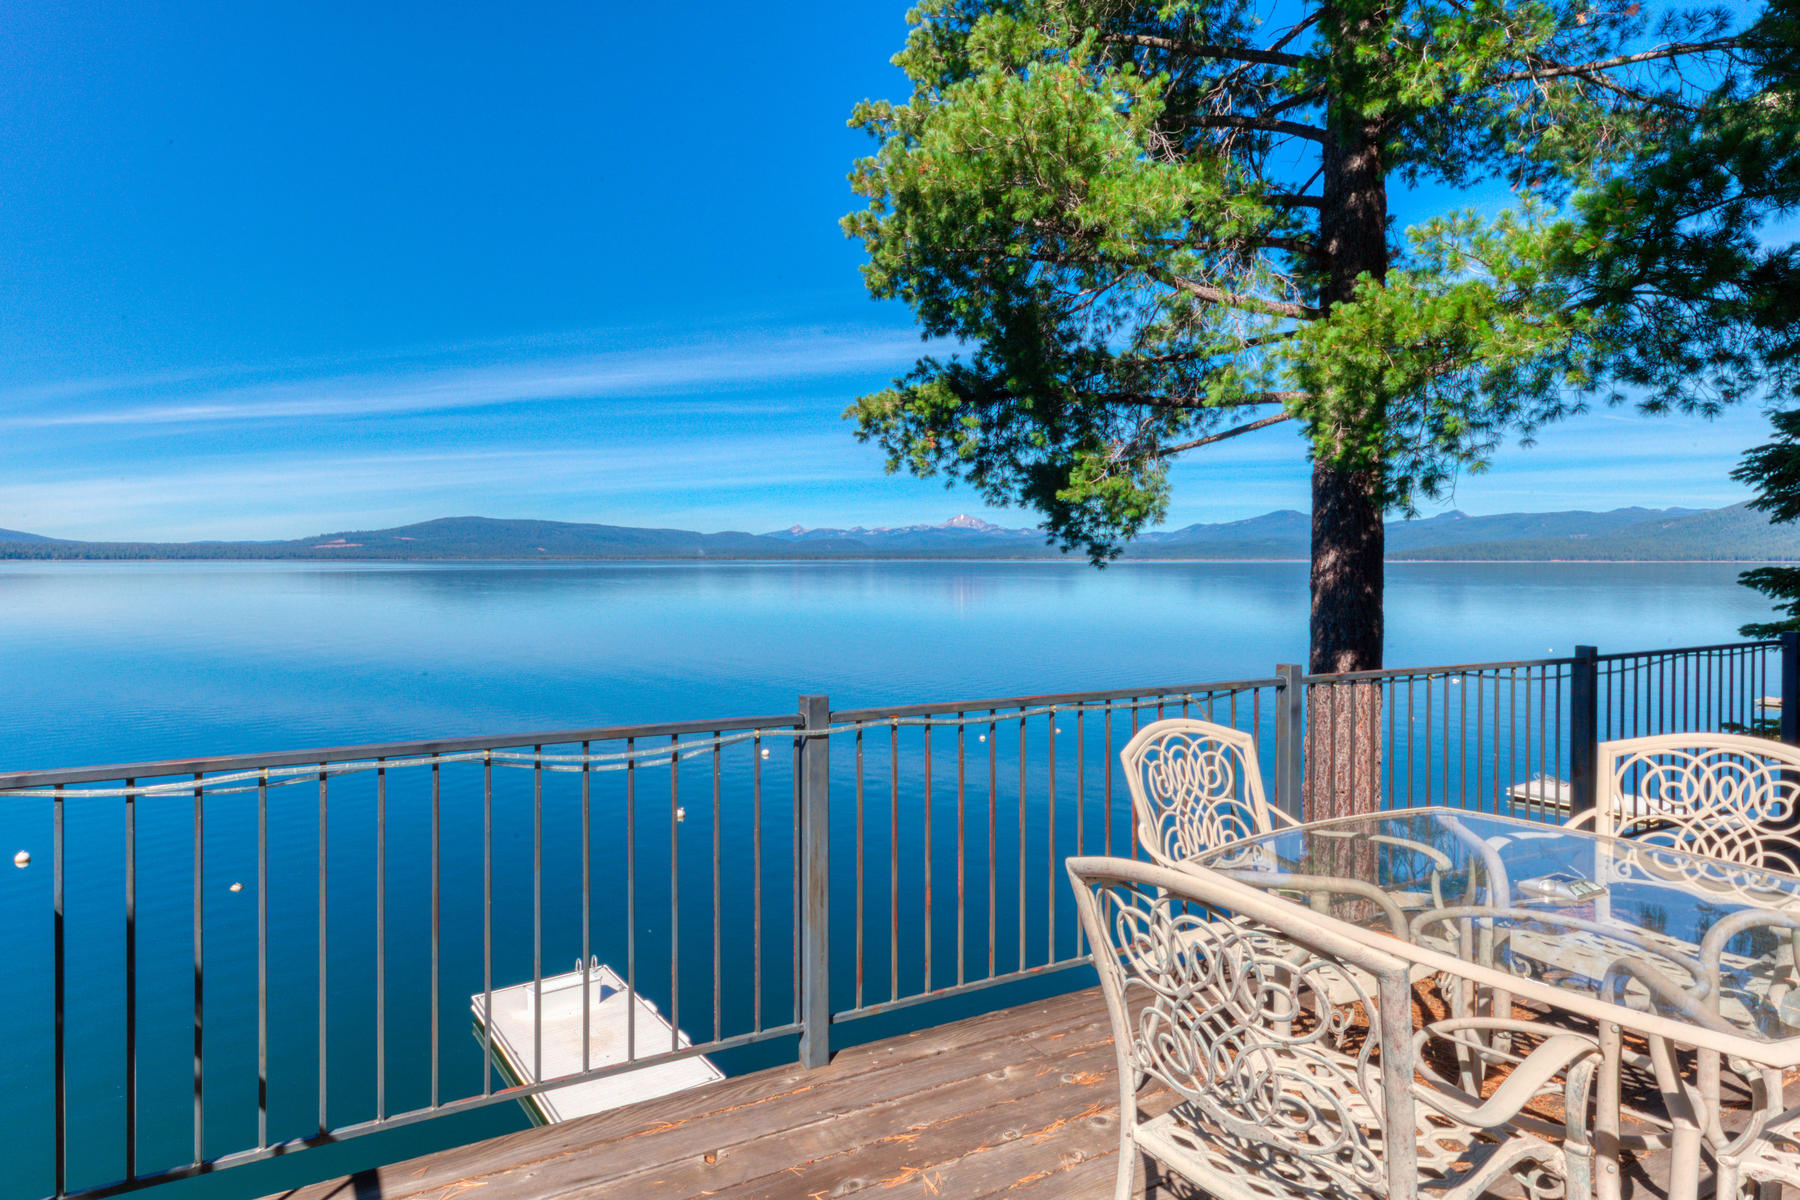 Additional photo for property listing at 837 Lassen View Dr, Lake Almannor, CA 96137 837 Lassen View Dr. Lake Almanor, California 96137 United States